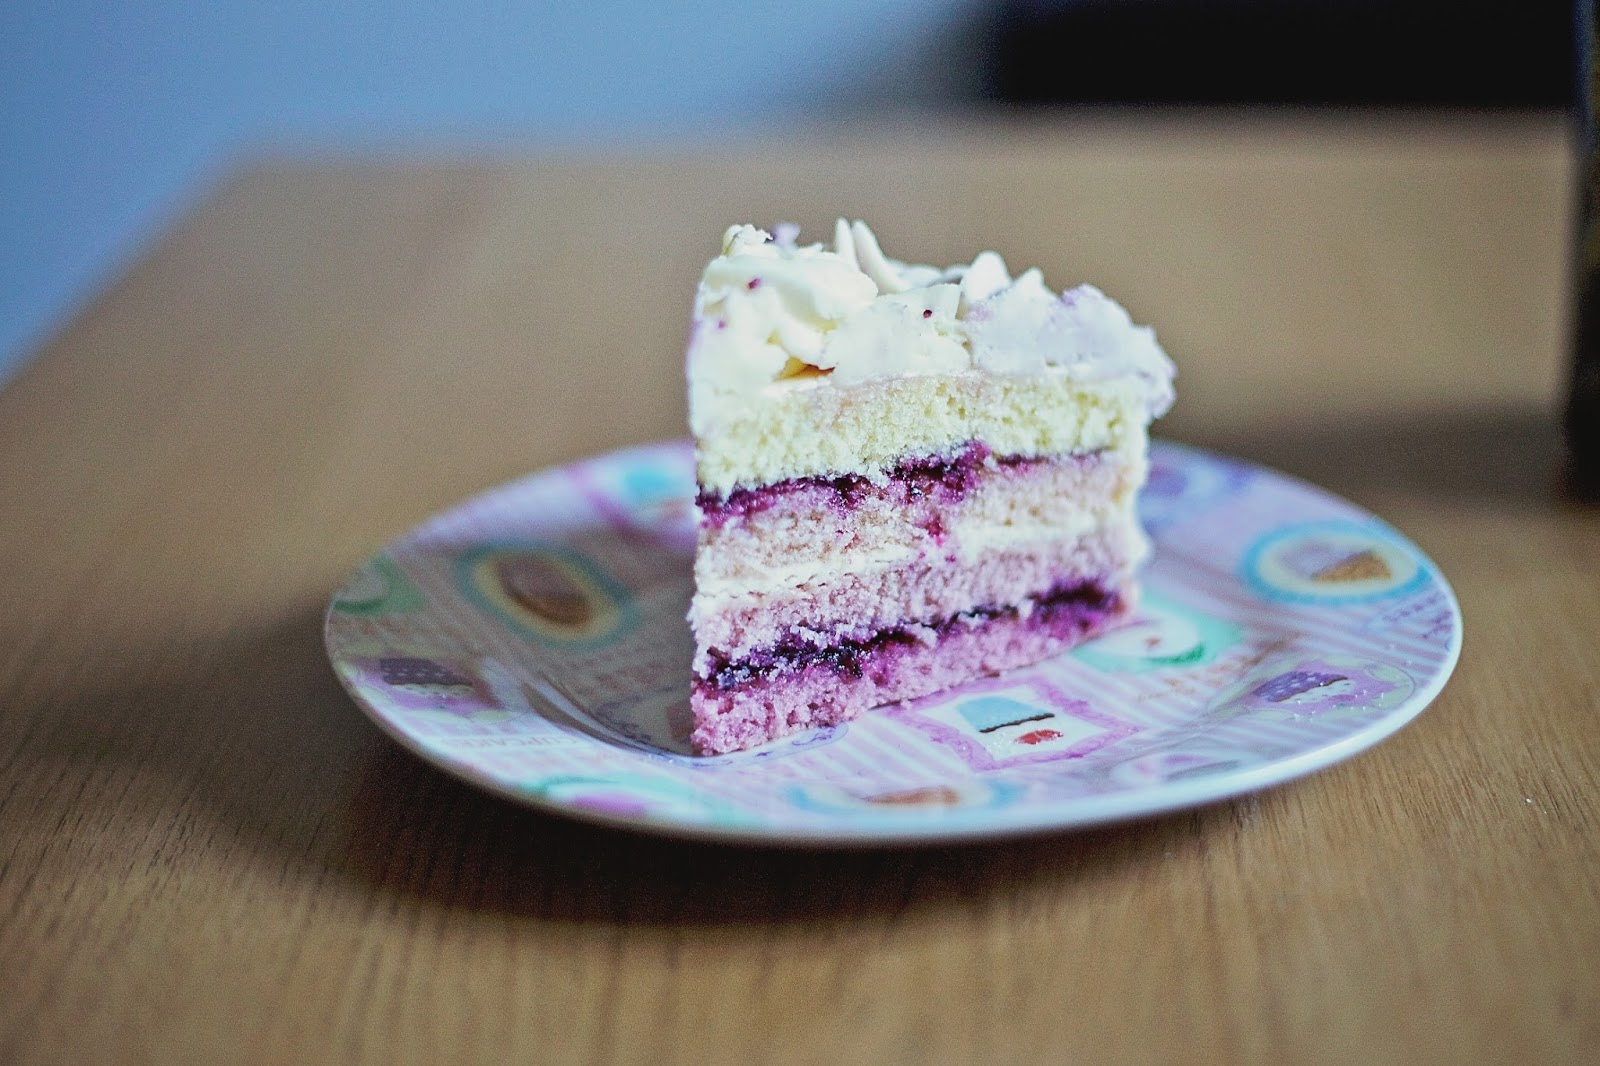 Cross-section slice of ombre cake